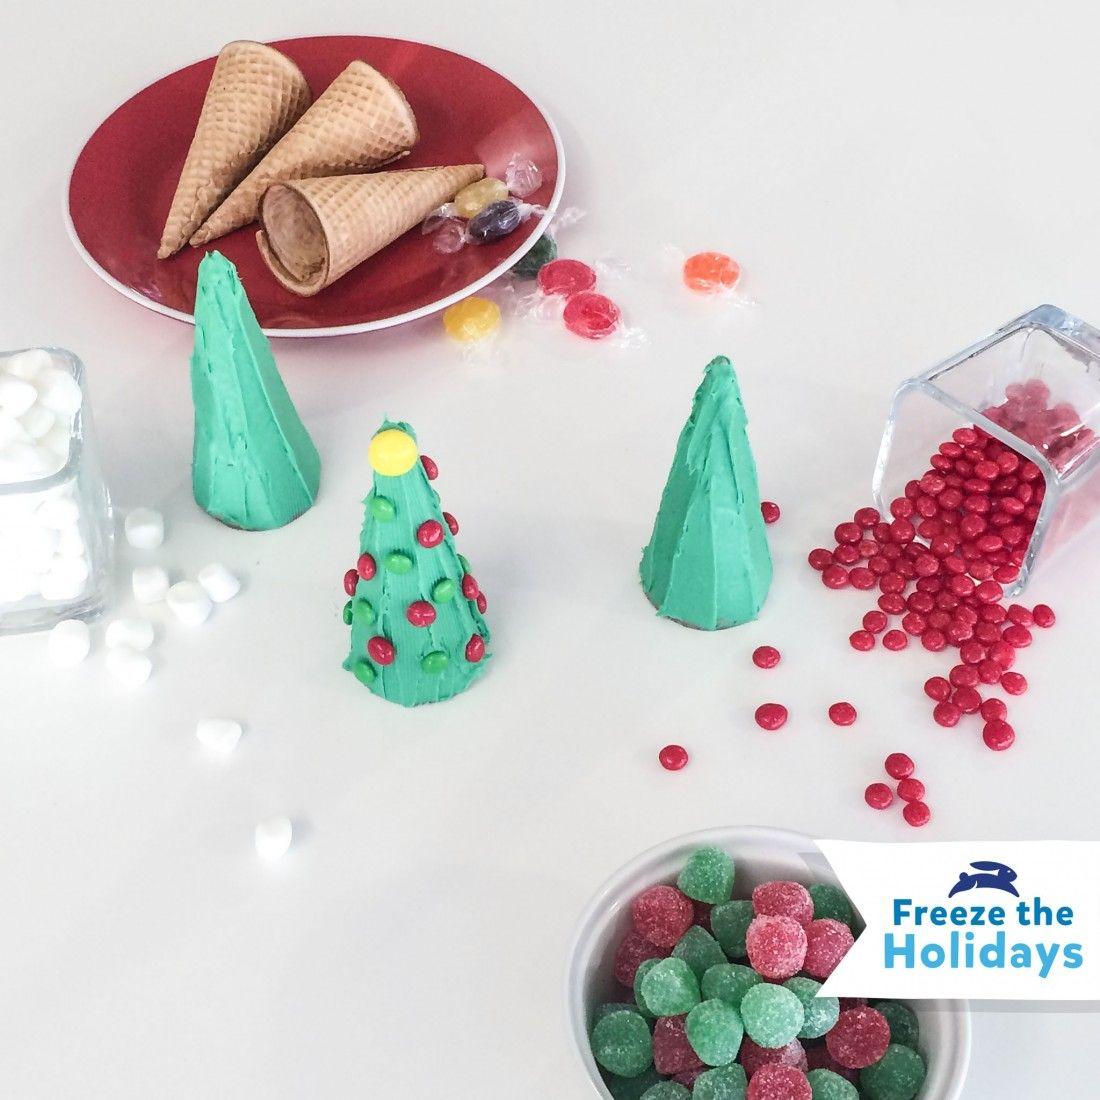 Freeze the Holidays Challenge: A very delicious DIY: build your own ...